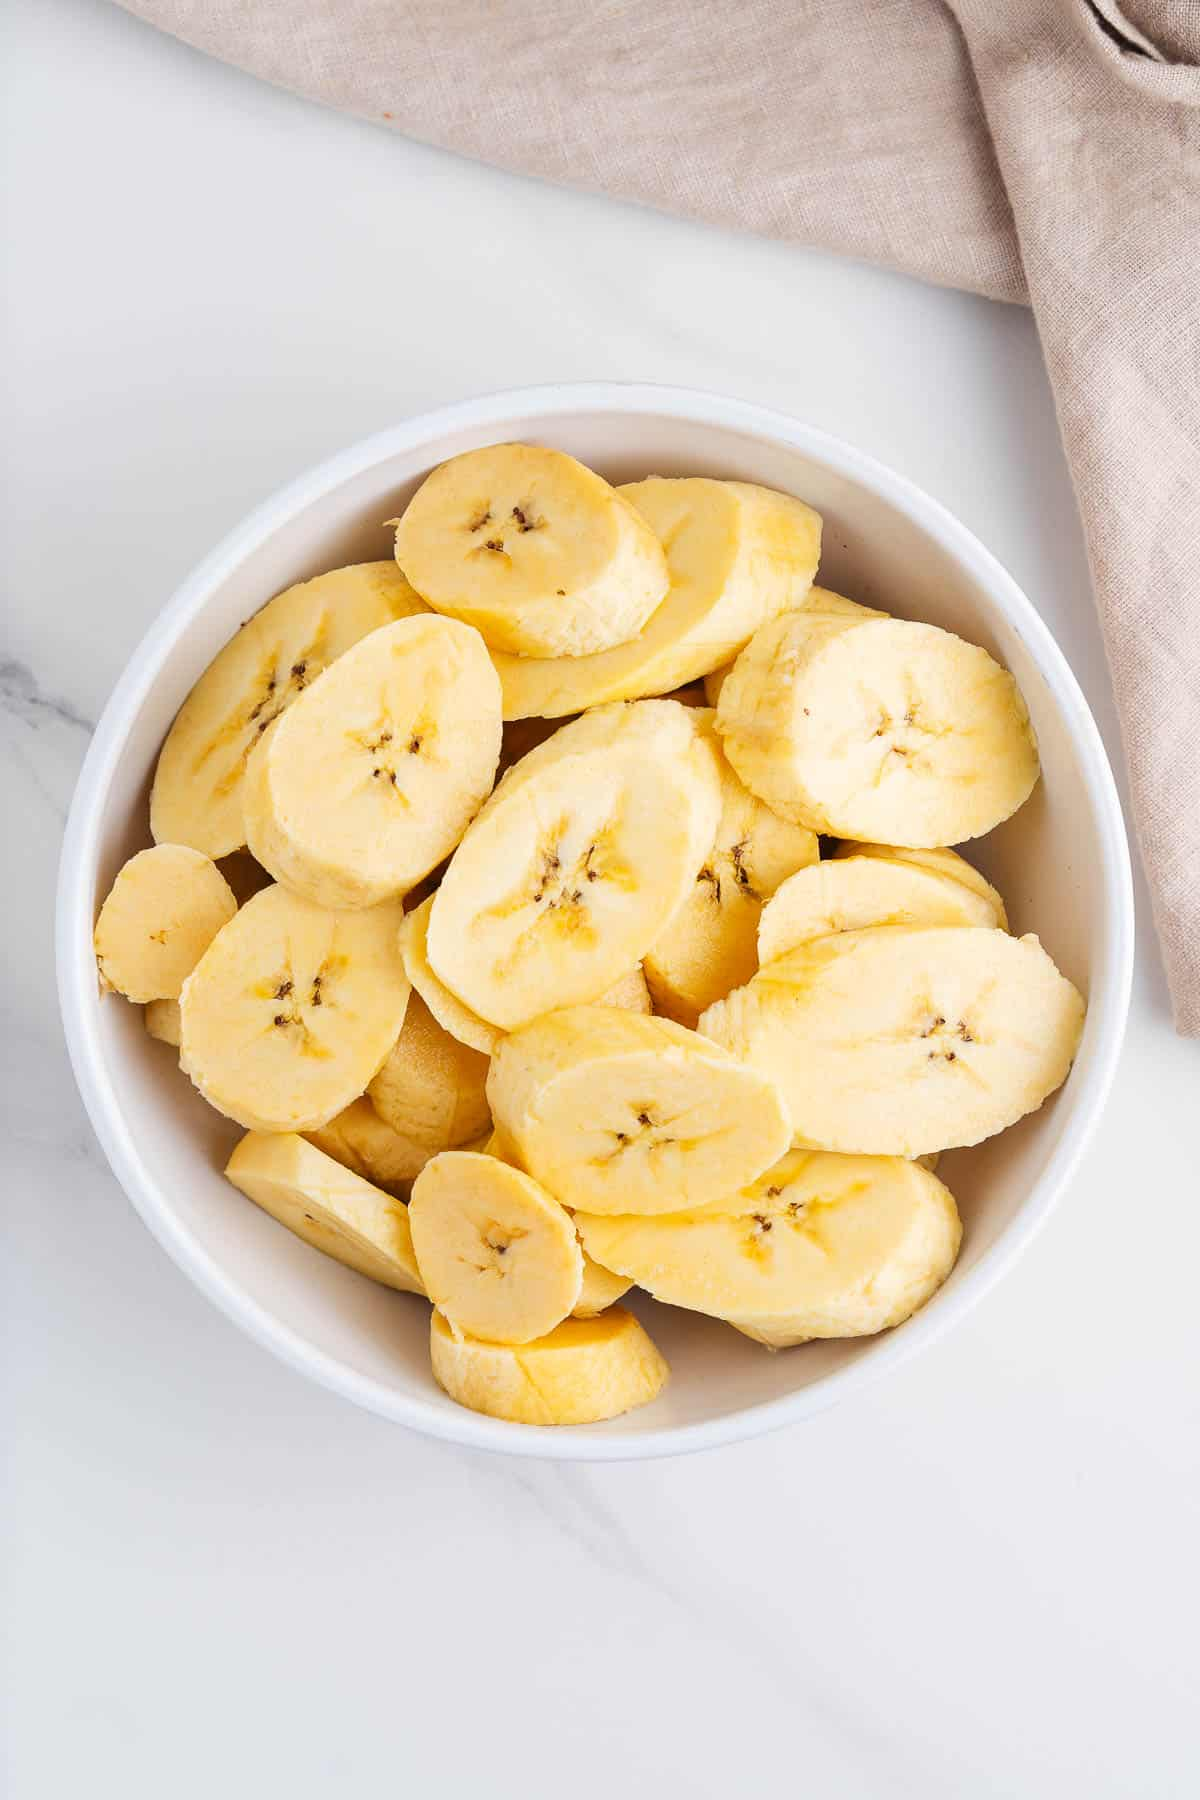 Sliced Plantains in a Bowl